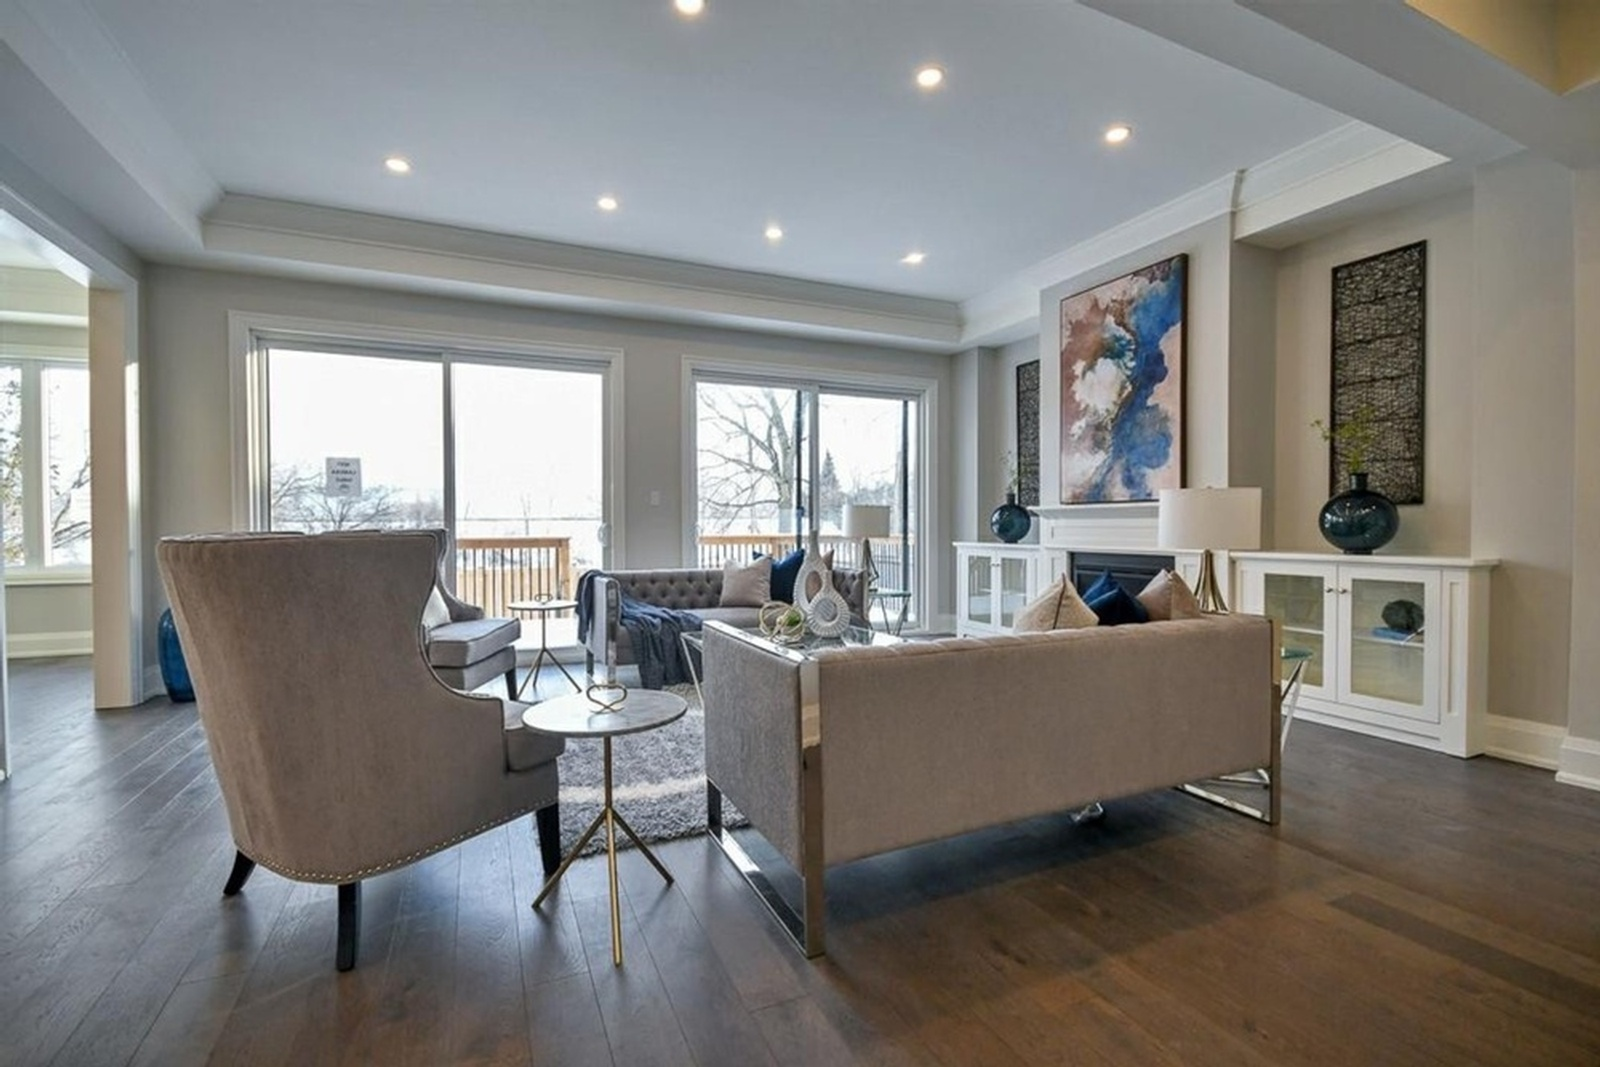 Occupied Property Staging Dunbarton Pickering, Condo Village by Impressive Staging